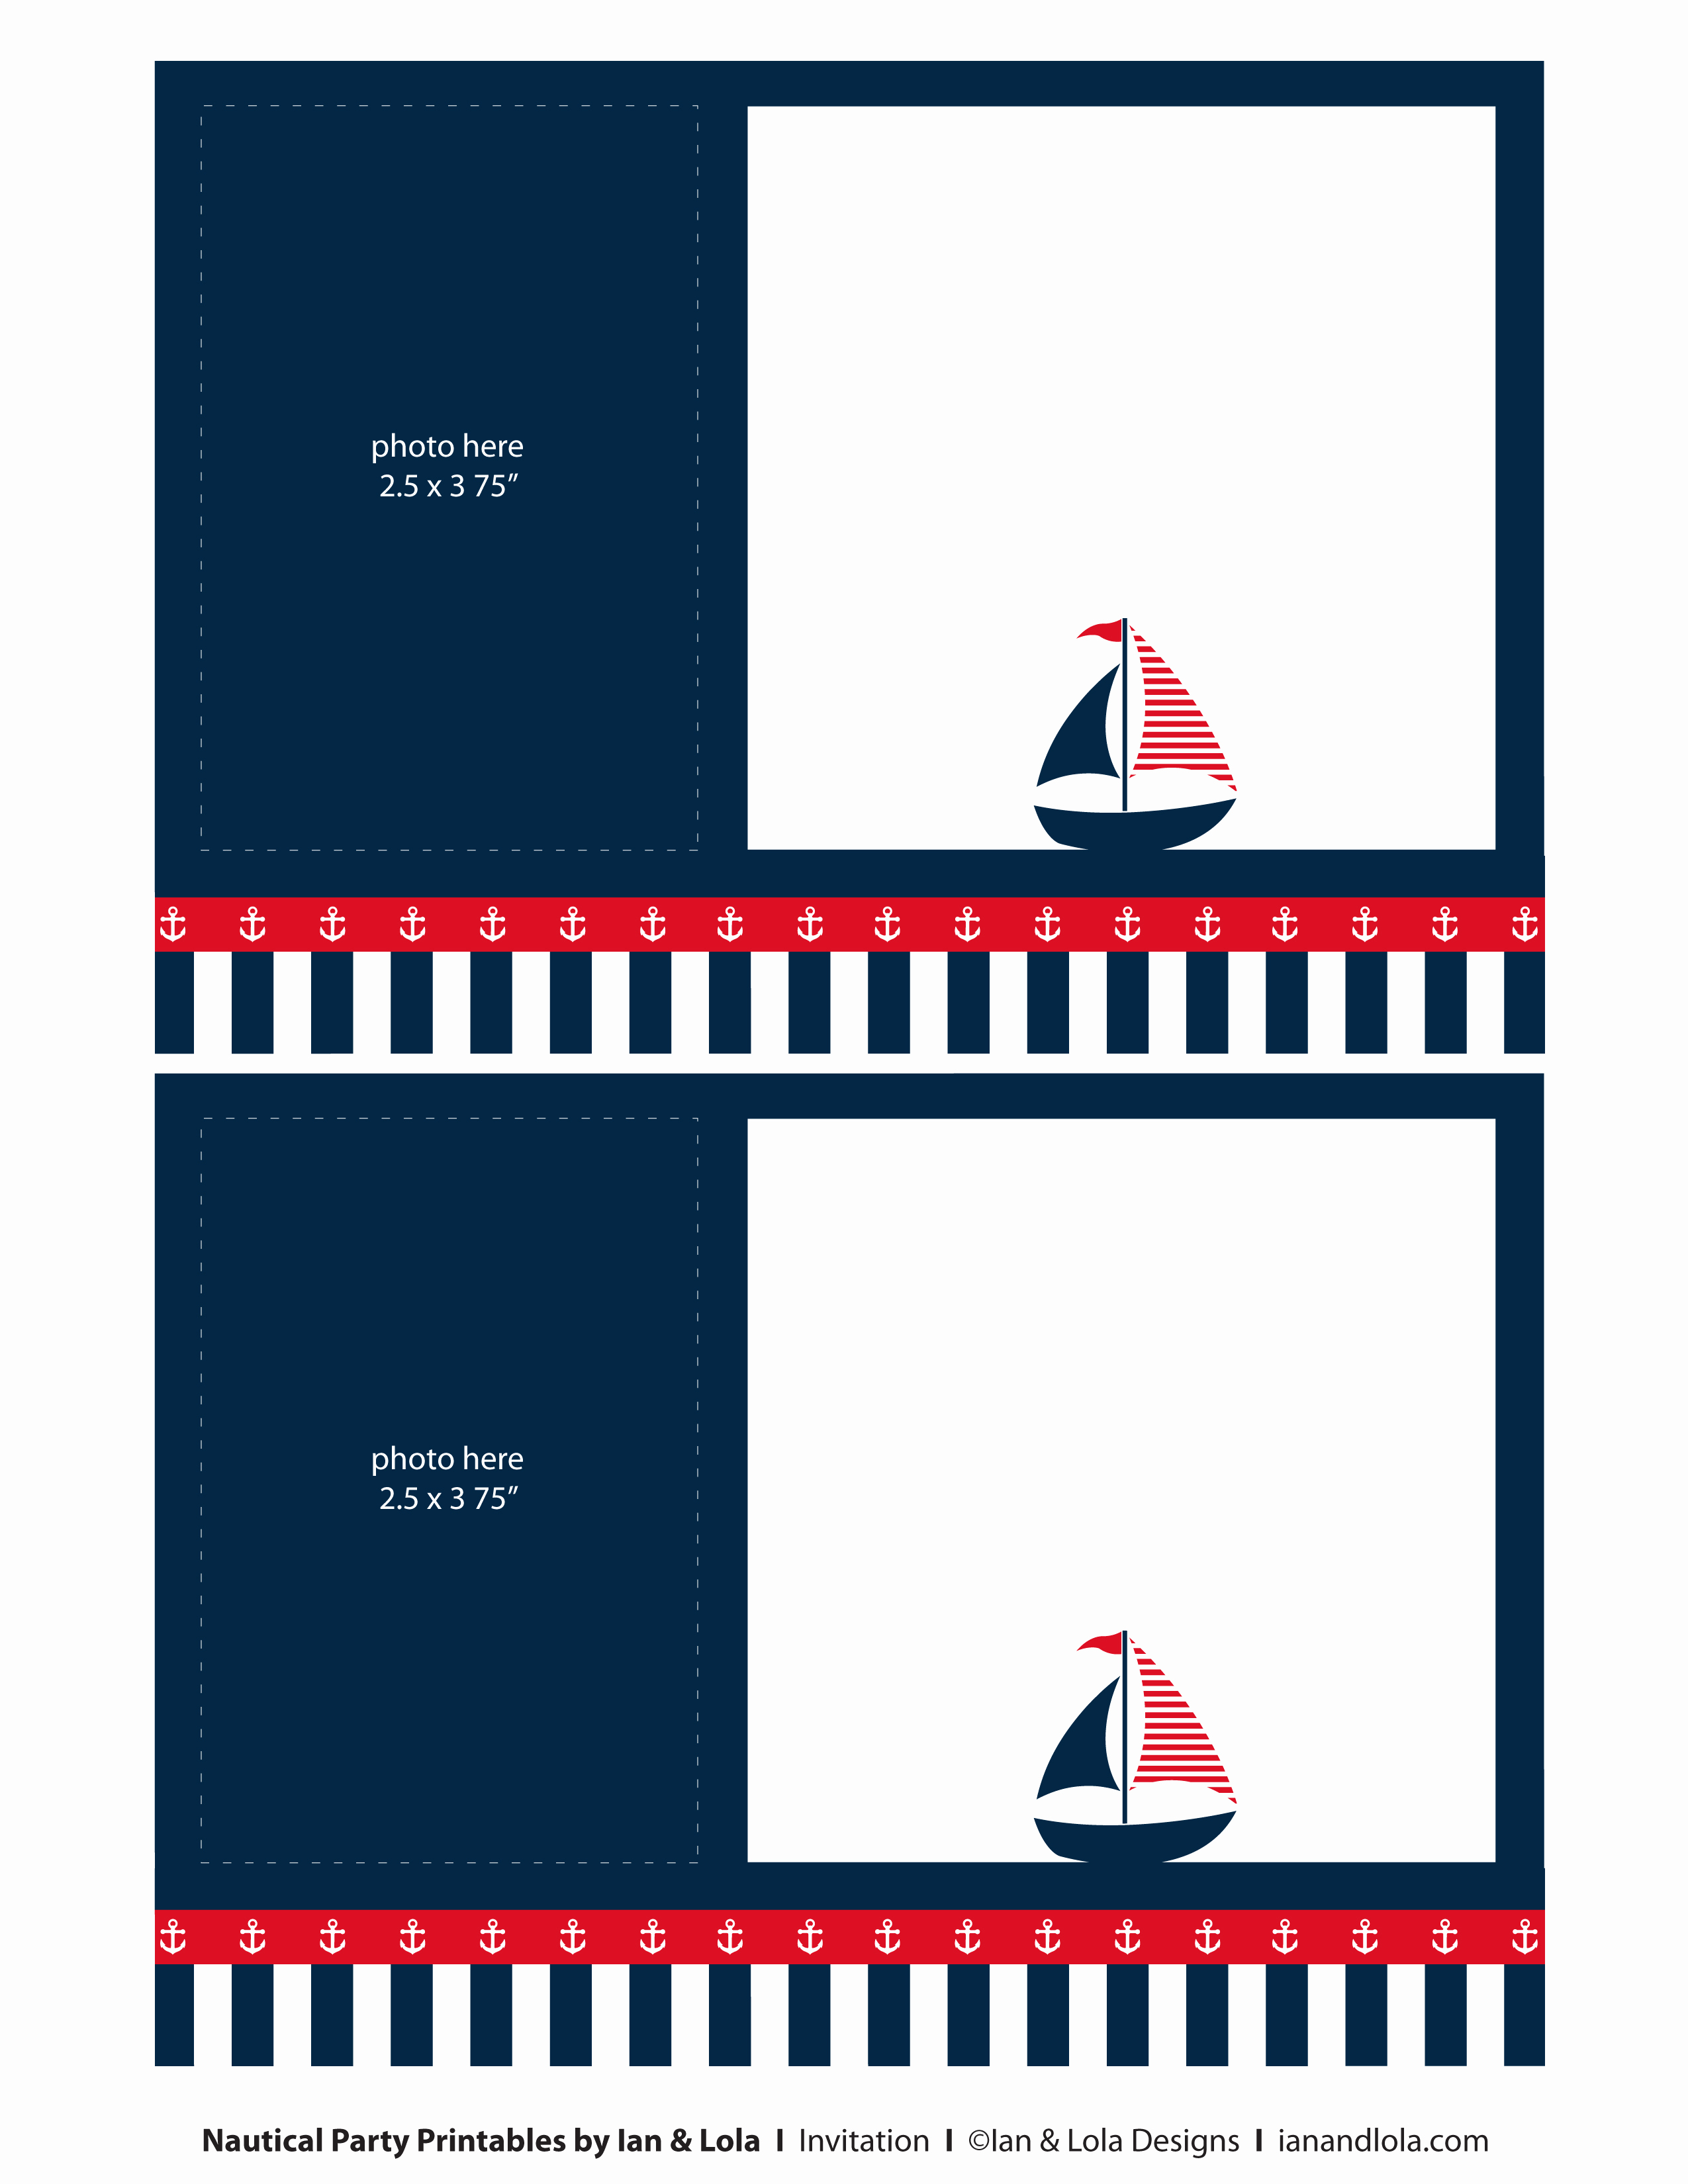 Free Nautical Invitation Templates Best Of Free Nautical Party Printables From Ian & Lola Designs